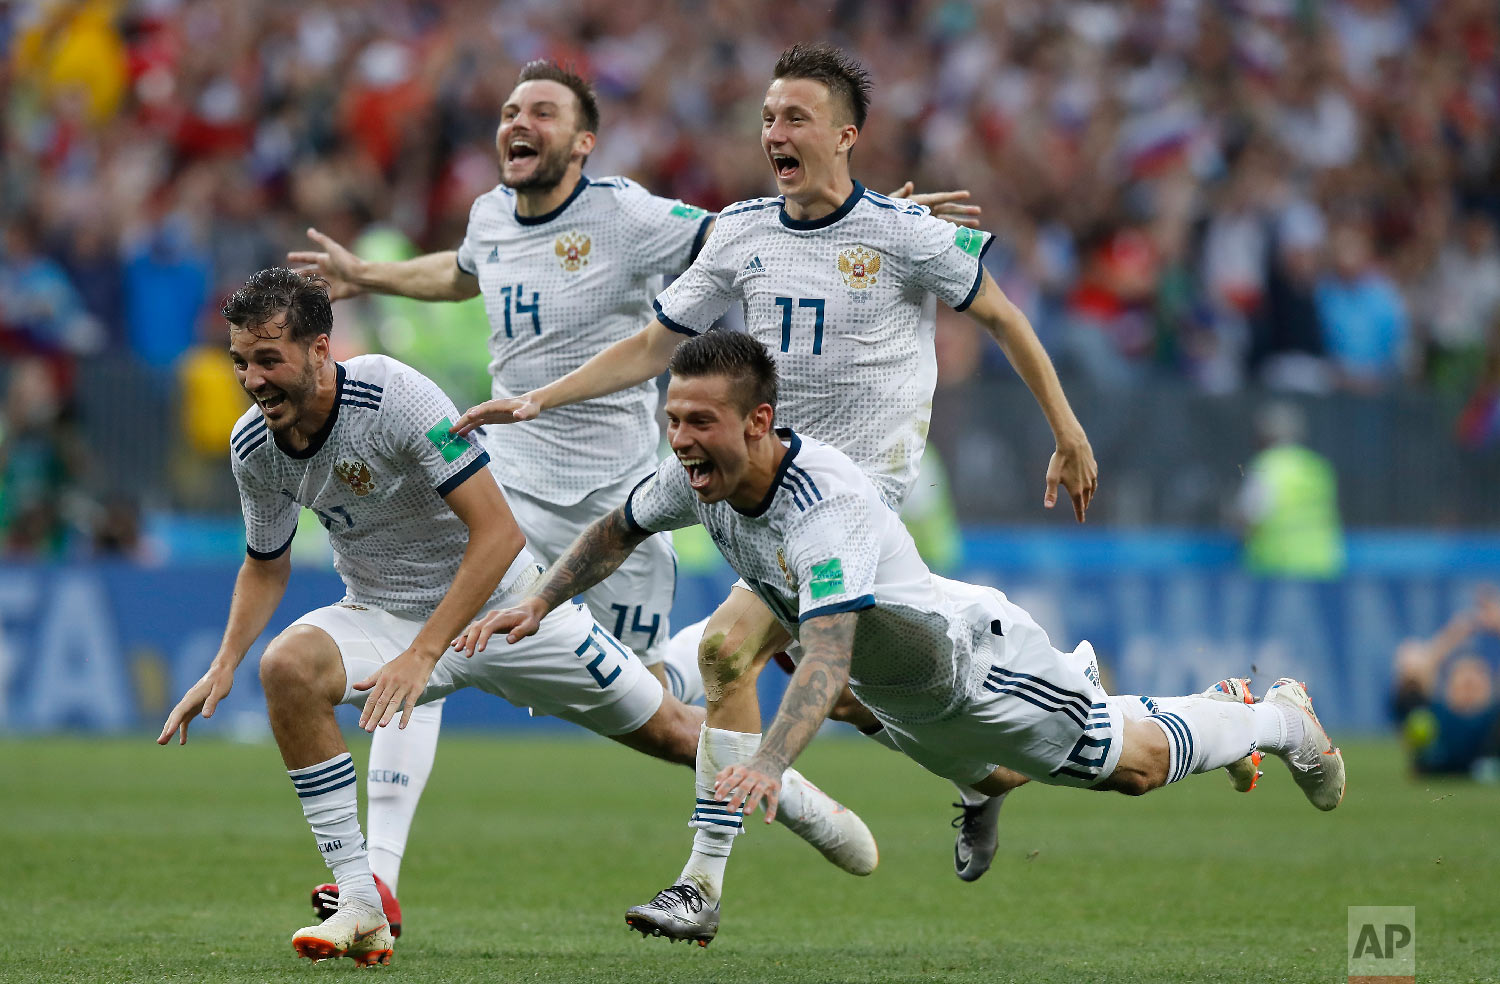 Russia's Fyodor Smolov, right, dives as he celebrates with teammates after Russia defeated Spain in a penalty shoot out during the round of 16 match between Spain and Russia at the 2018 soccer World Cup at the Luzhniki Stadium in Moscow, Russia, Sunday, July 1, 2018. (AP Photo/Manu Fernandez)